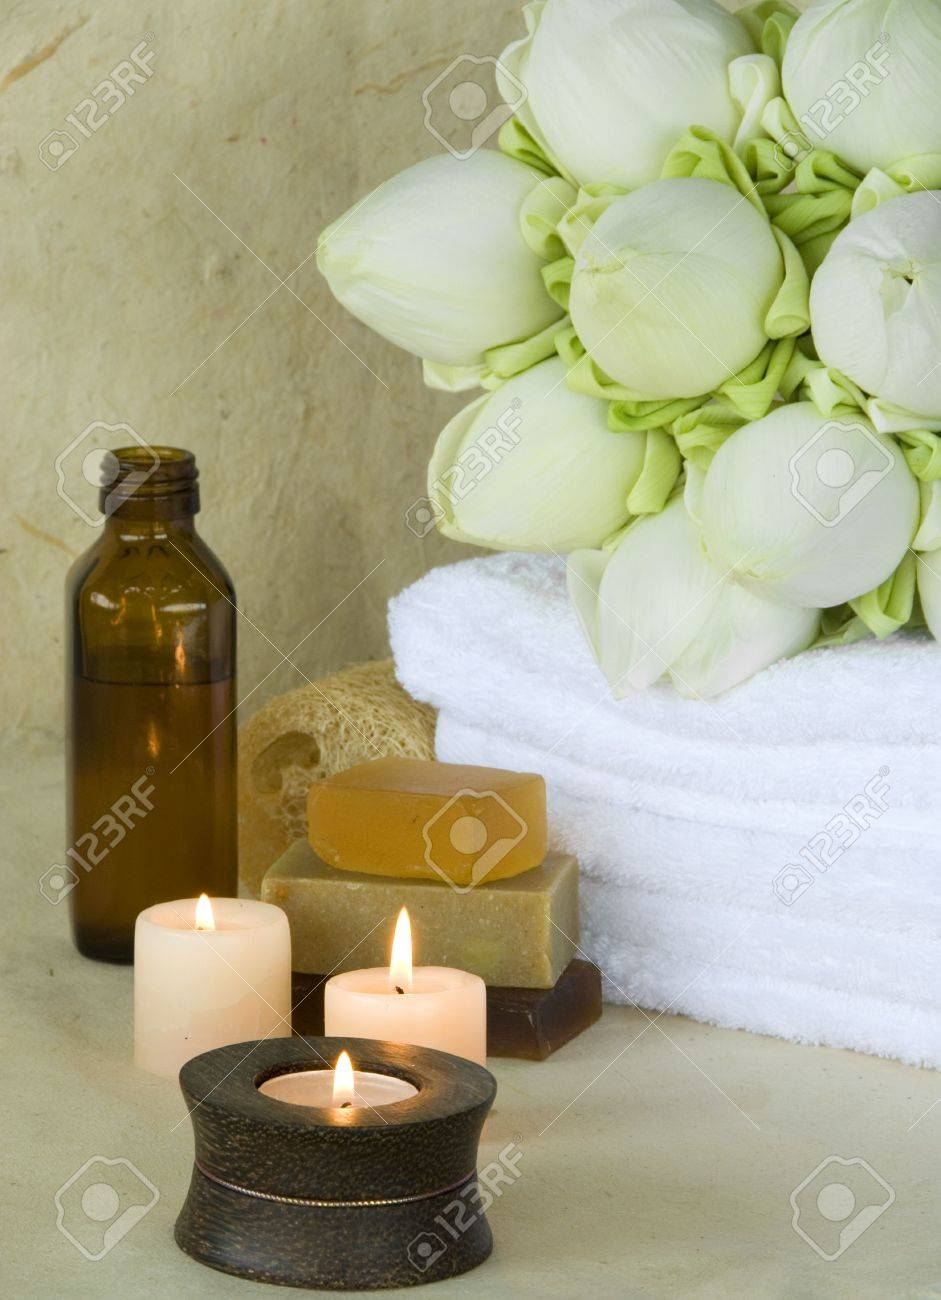 Spa products massage oil with candles and soap with lotus flowers spa products massage oil with candles and soap with lotus flowers with background of handmade paper dhlflorist Gallery